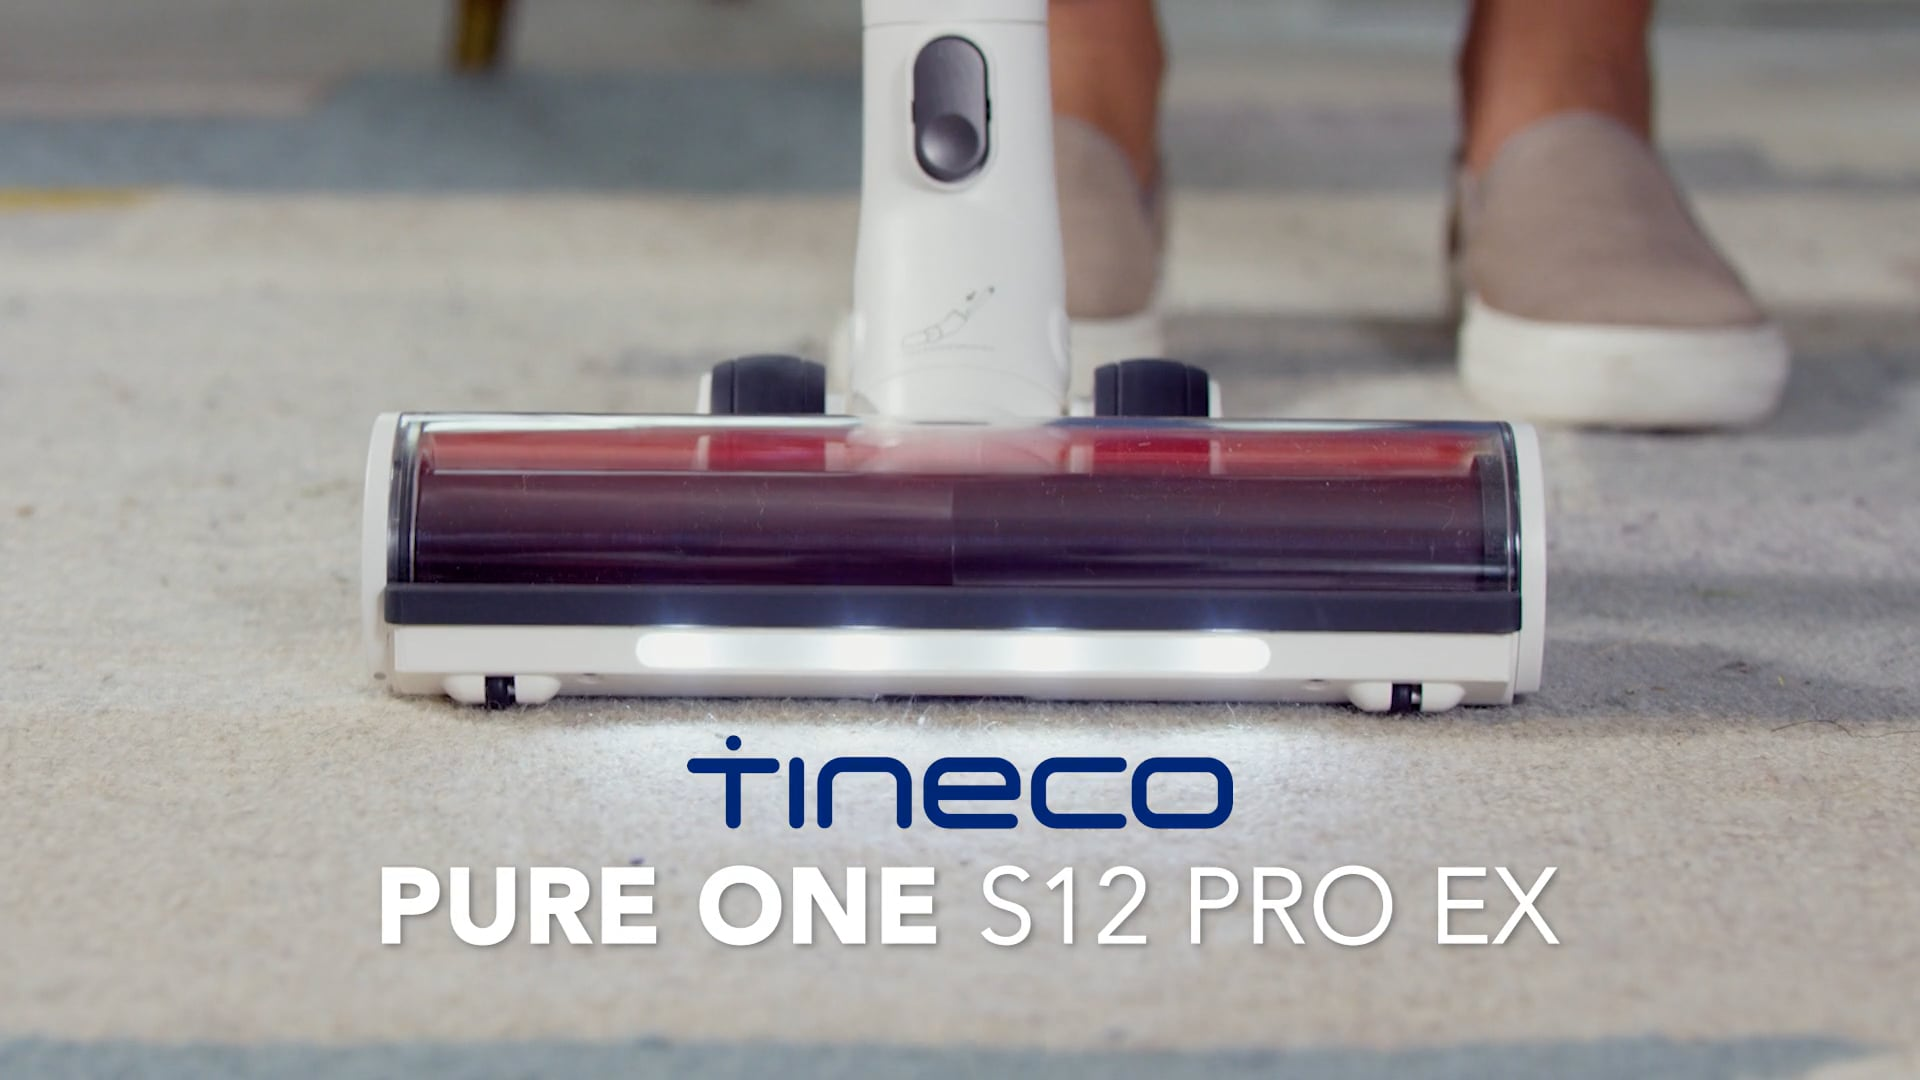 Tineco - PURE ONE S12 Pro EX Commercial